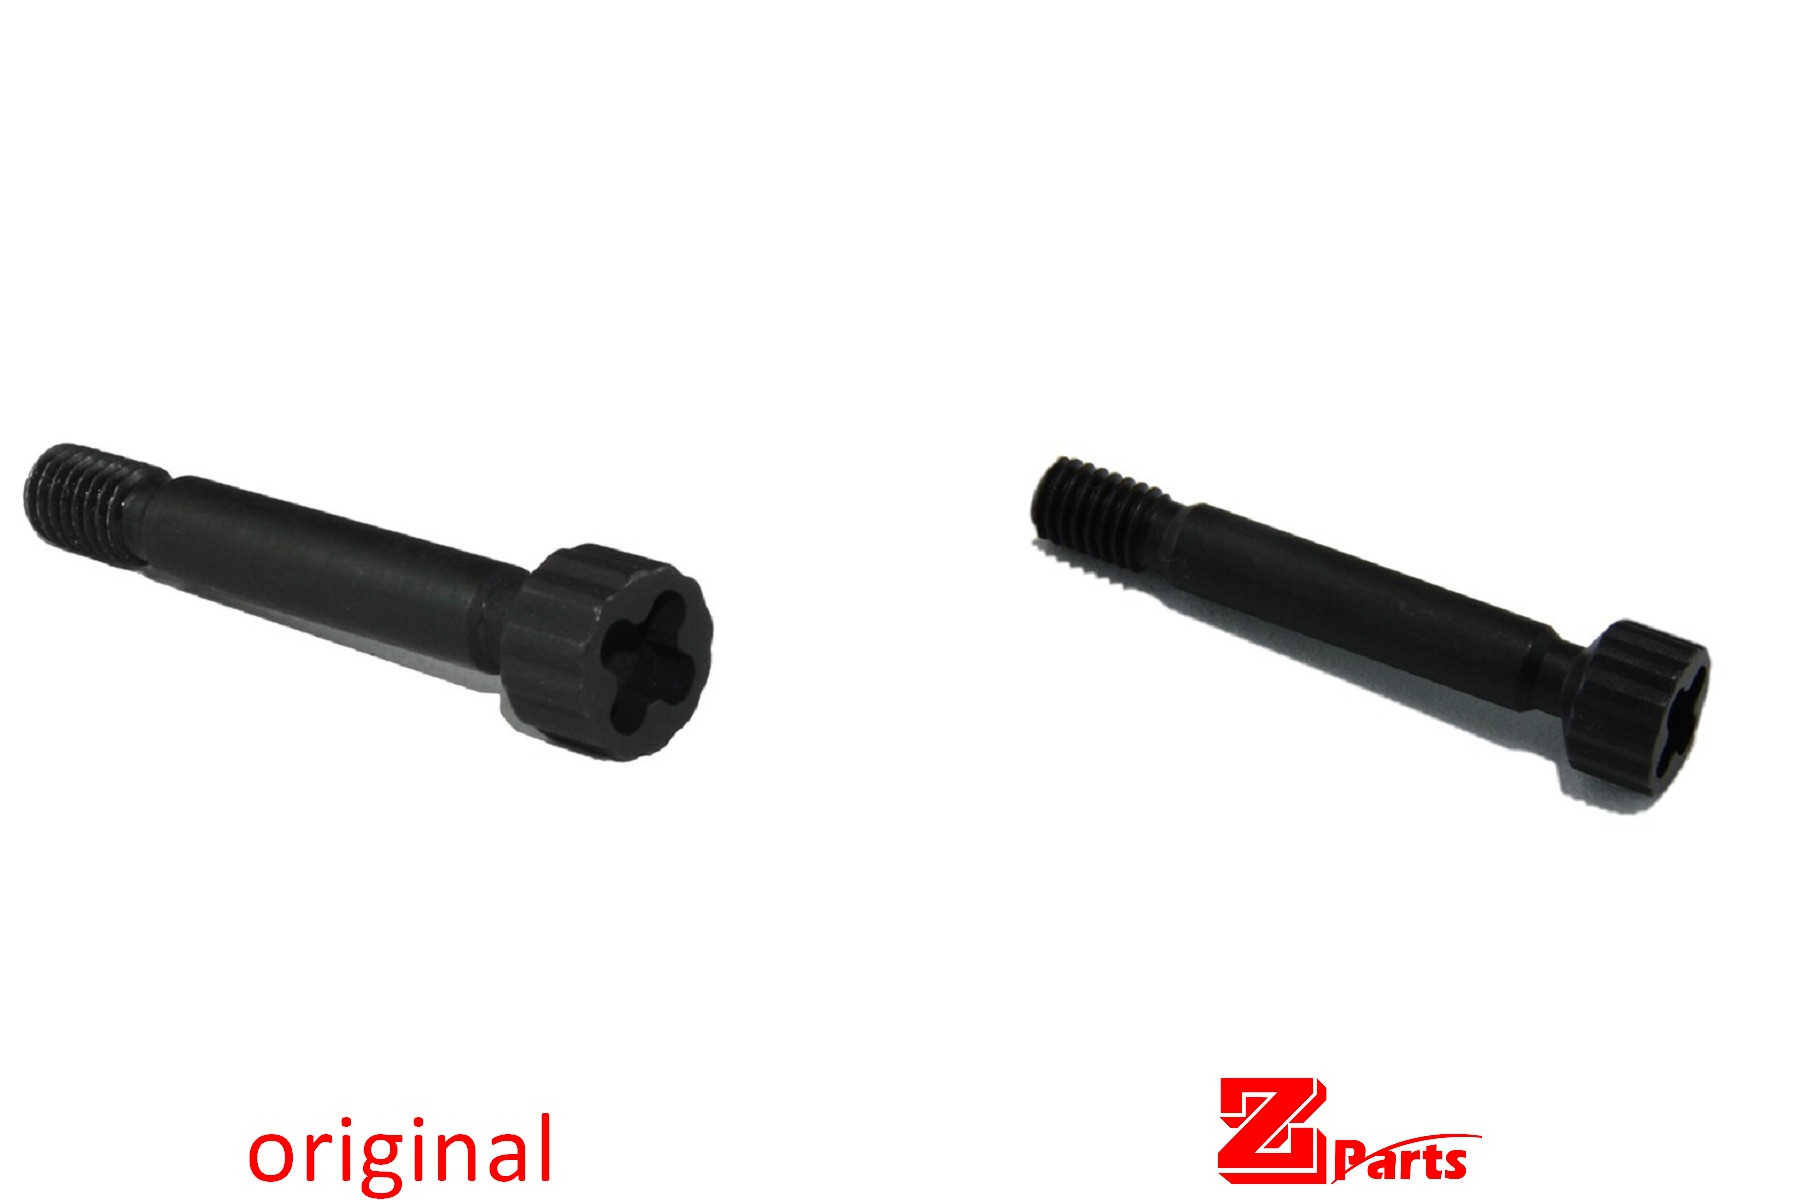 ORIGINAL VS. ZPARTS